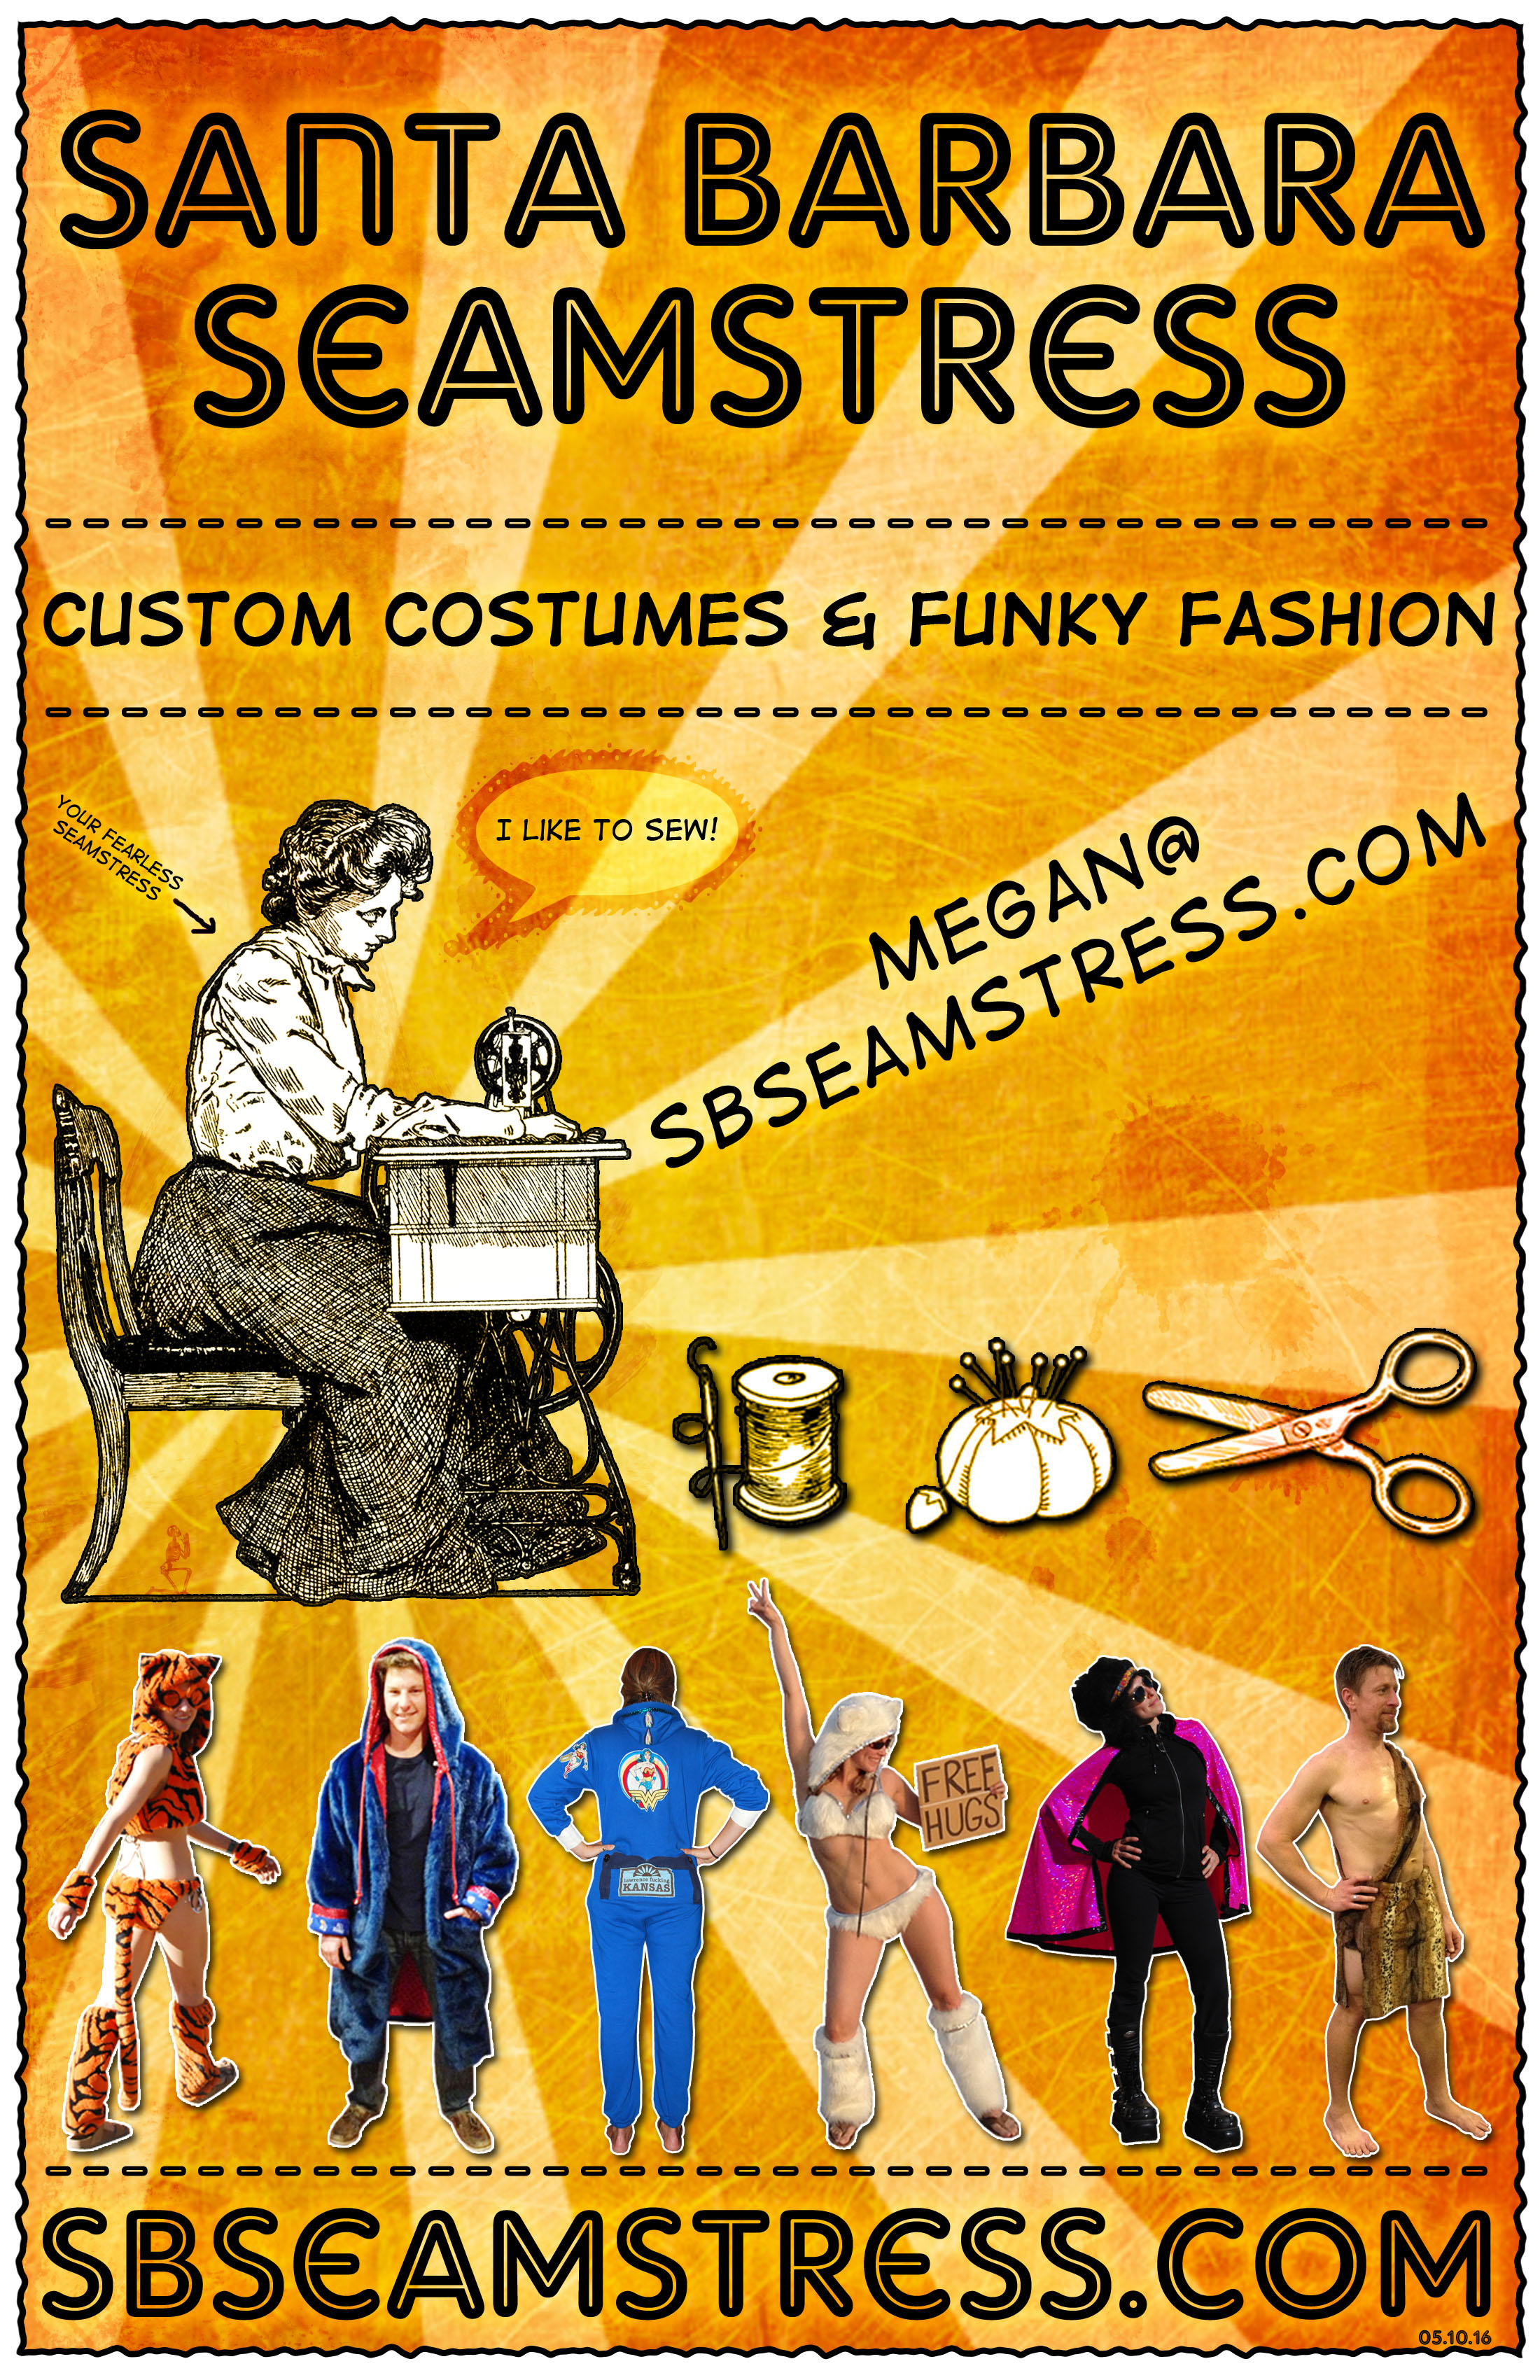 Santa Barbara Seamstress Flyer-Orange- SB Seamstress